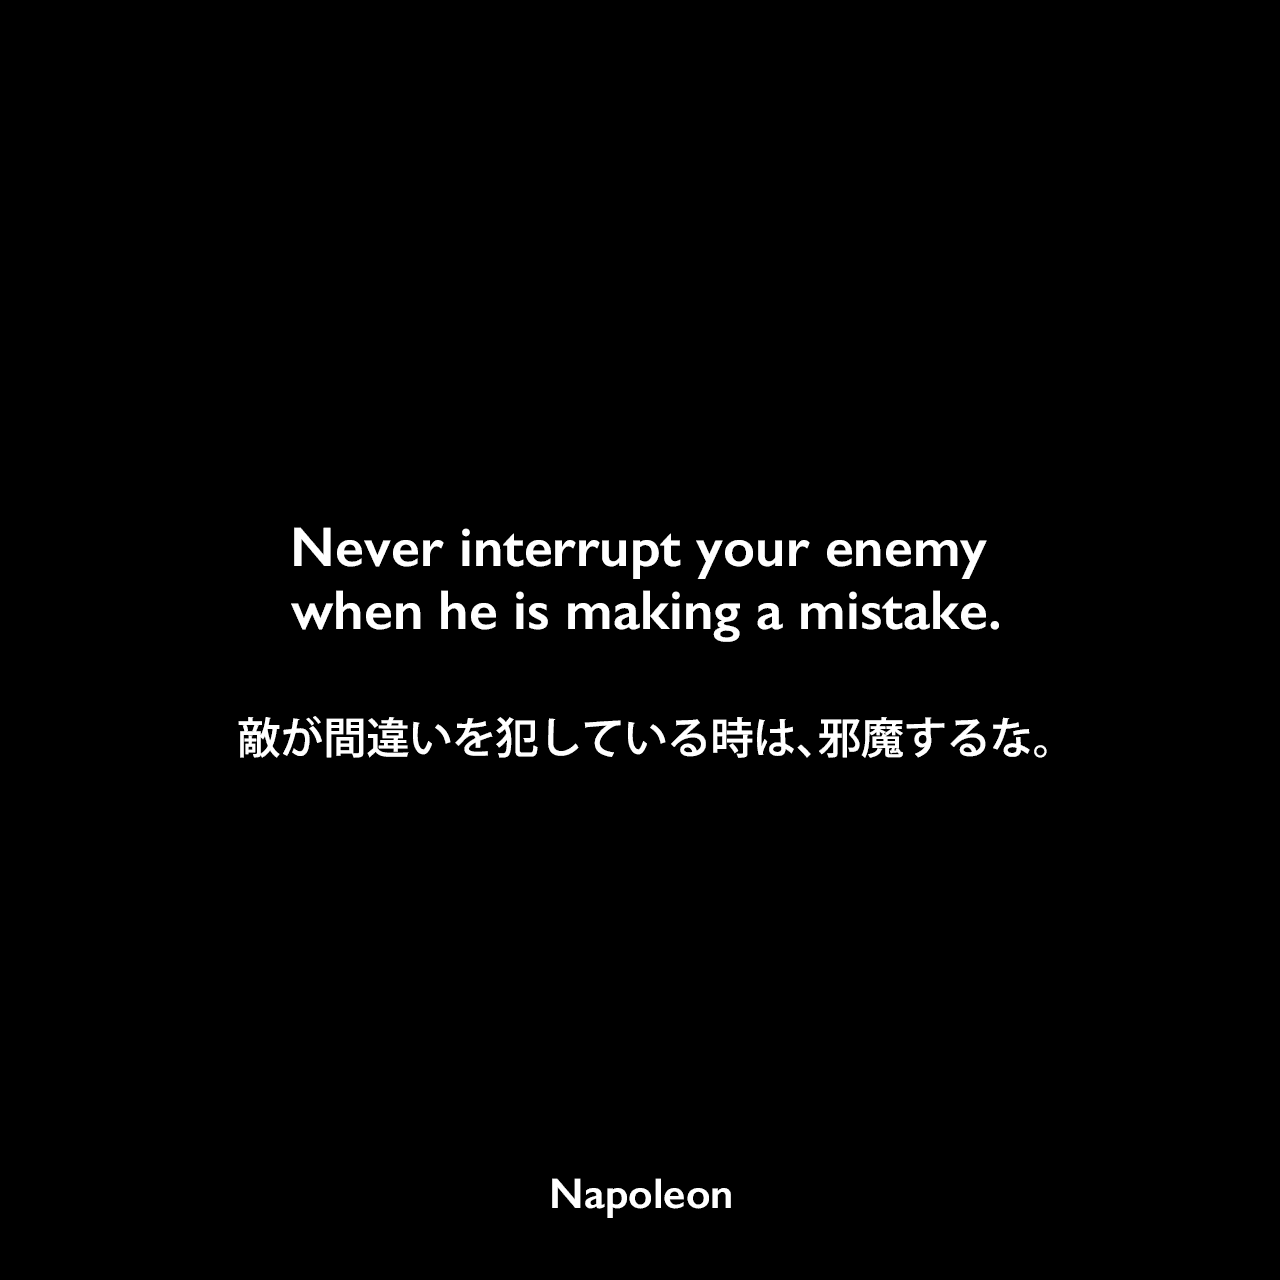 Never interrupt your enemy when he is making a mistake.敵が間違いを犯している時は、邪魔するな。- James Charltonの本「The Military Quotation Book」よりNapoleon